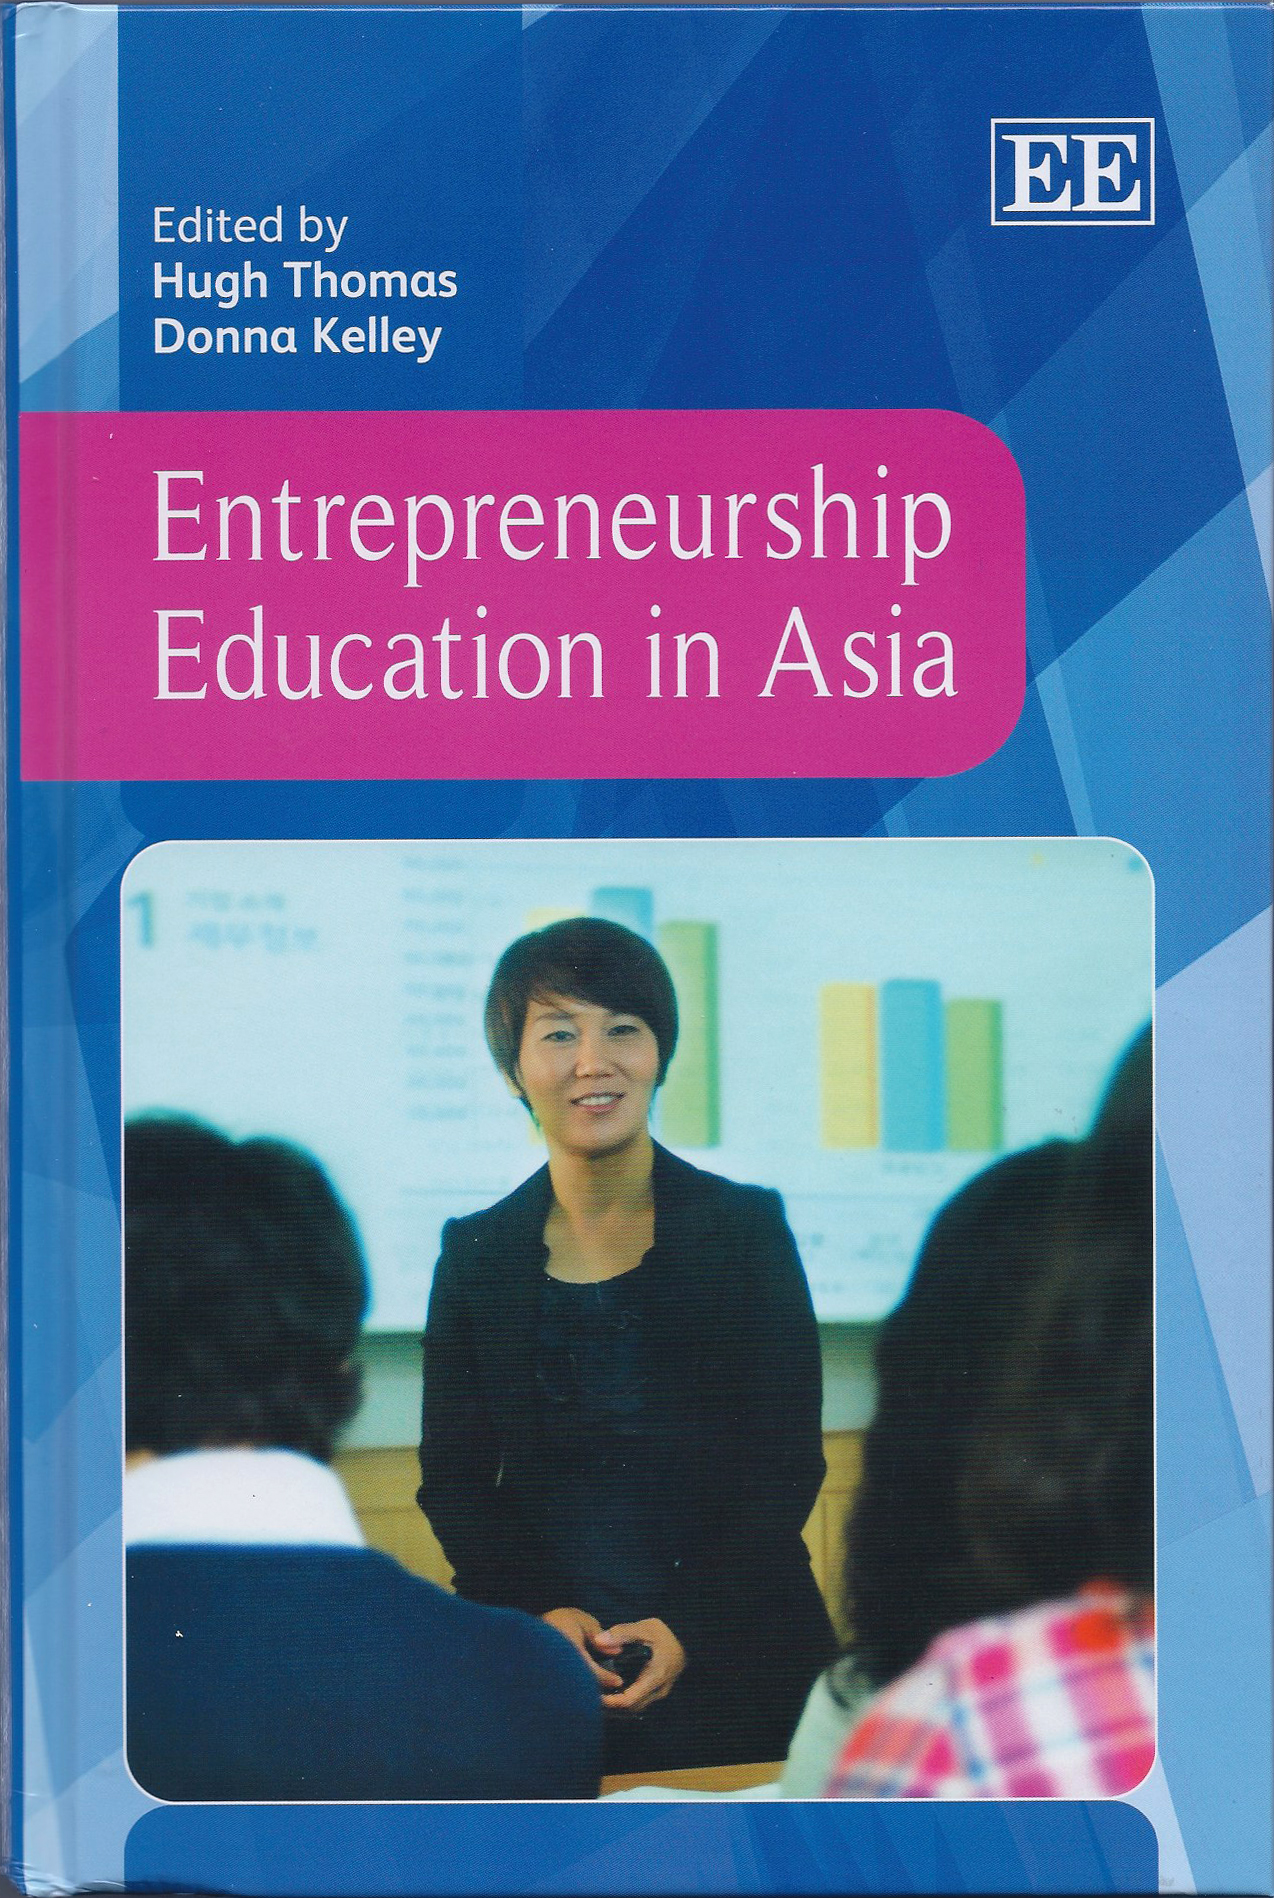 Entrepreneurship education in Asia